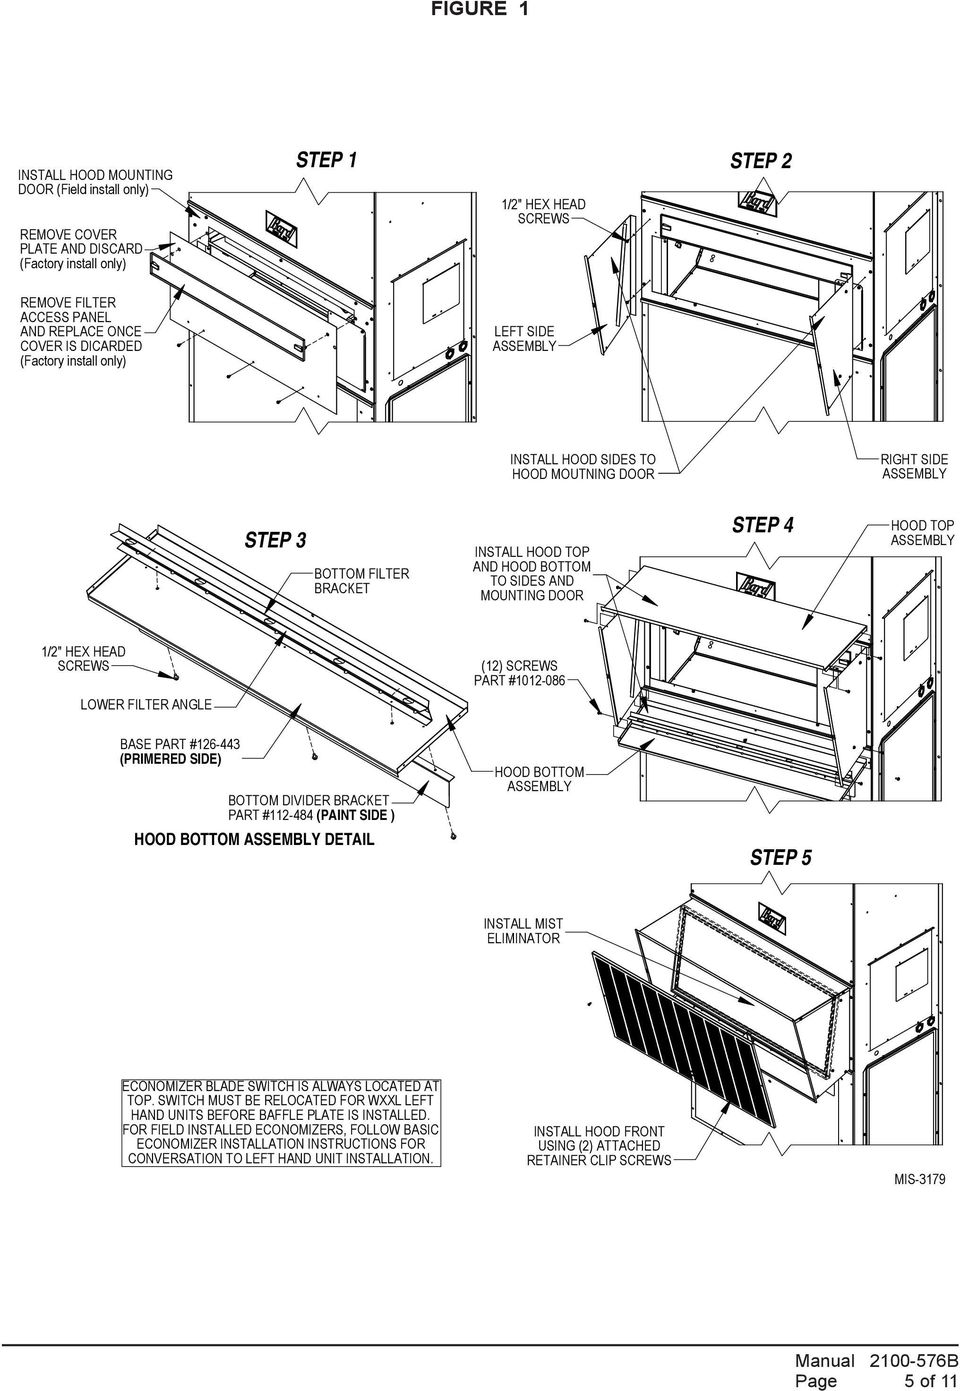 Operating Instructions Economizers With Exhaust For Equipment Economizer Wiring Diagram Door Step 4 Hood Top Assembly 1 2 Hex Head Screws Lower Filter Angle